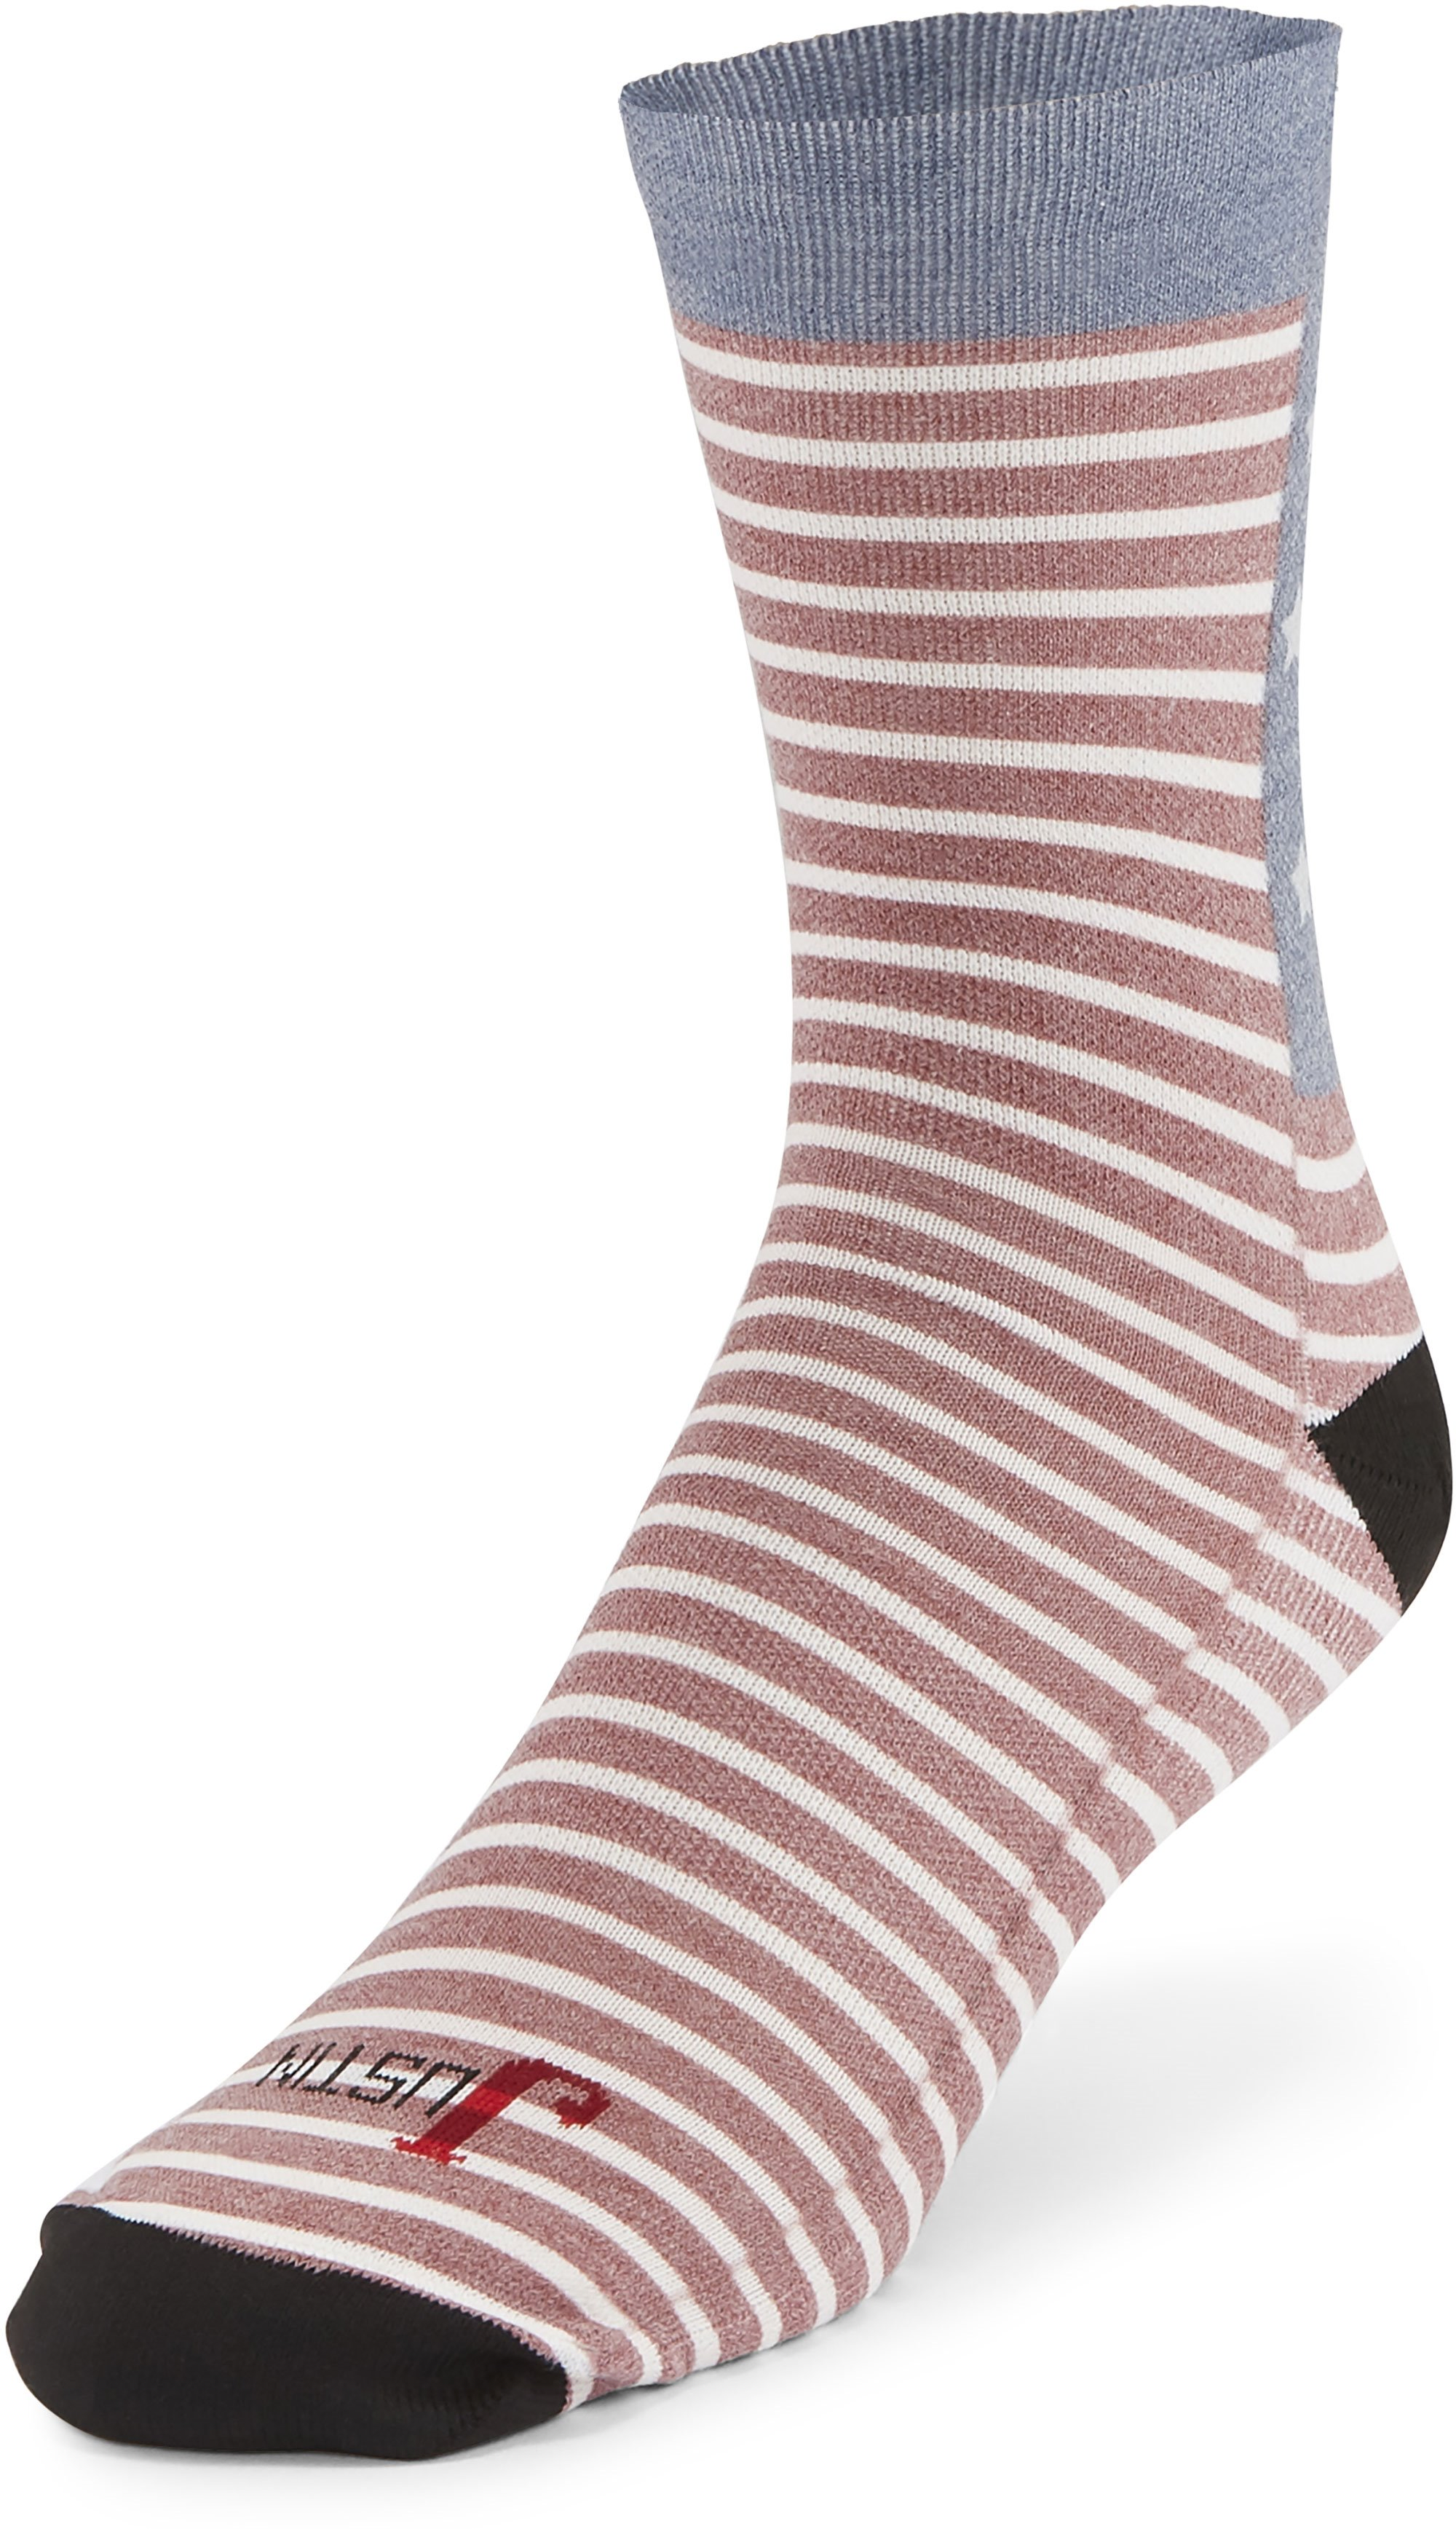 Product Image for style SOX9490H